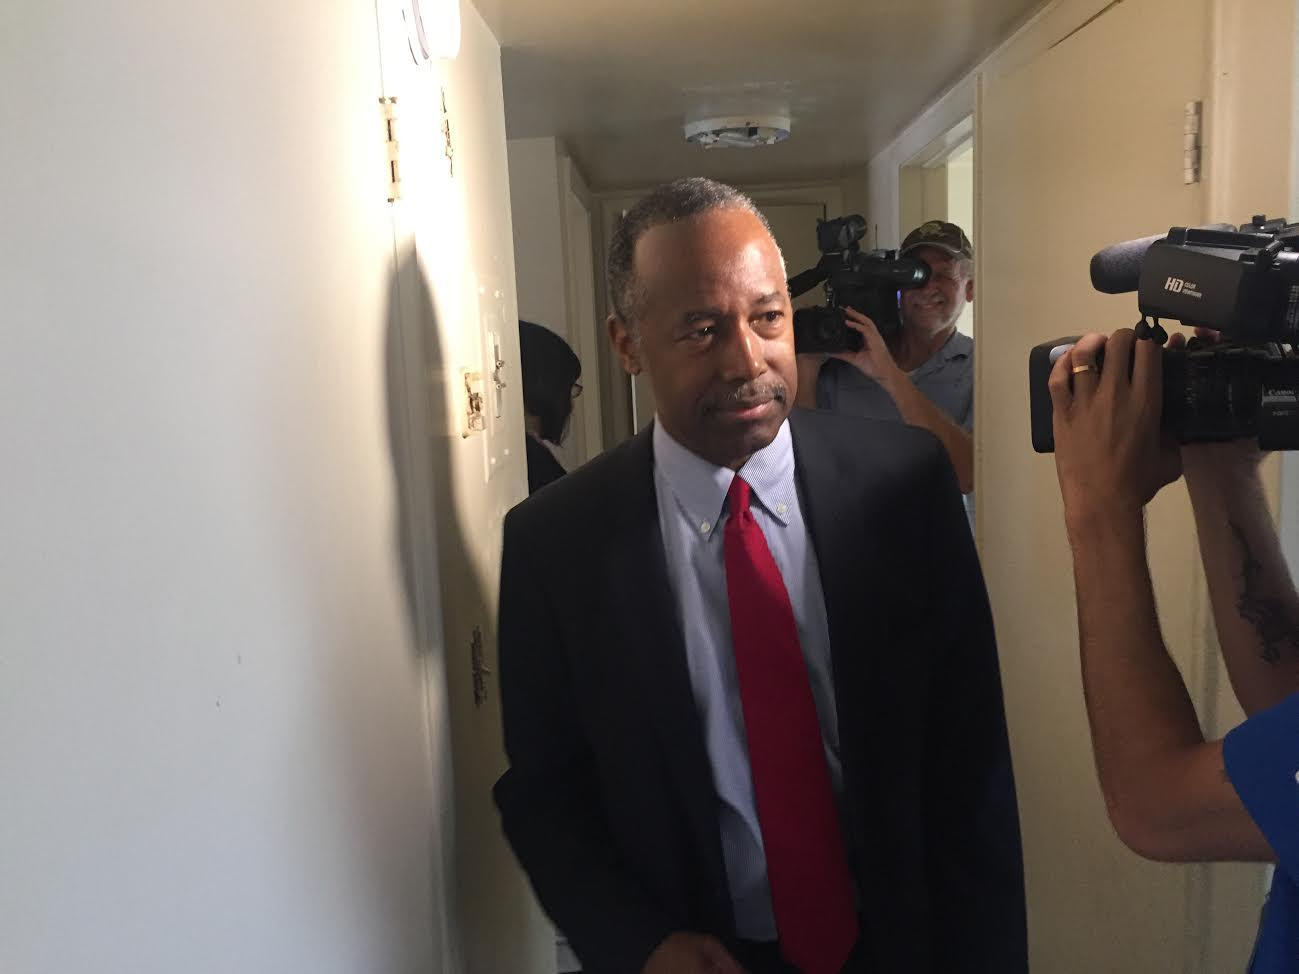 Ben Carson stuck in elevator of Miami public housing building